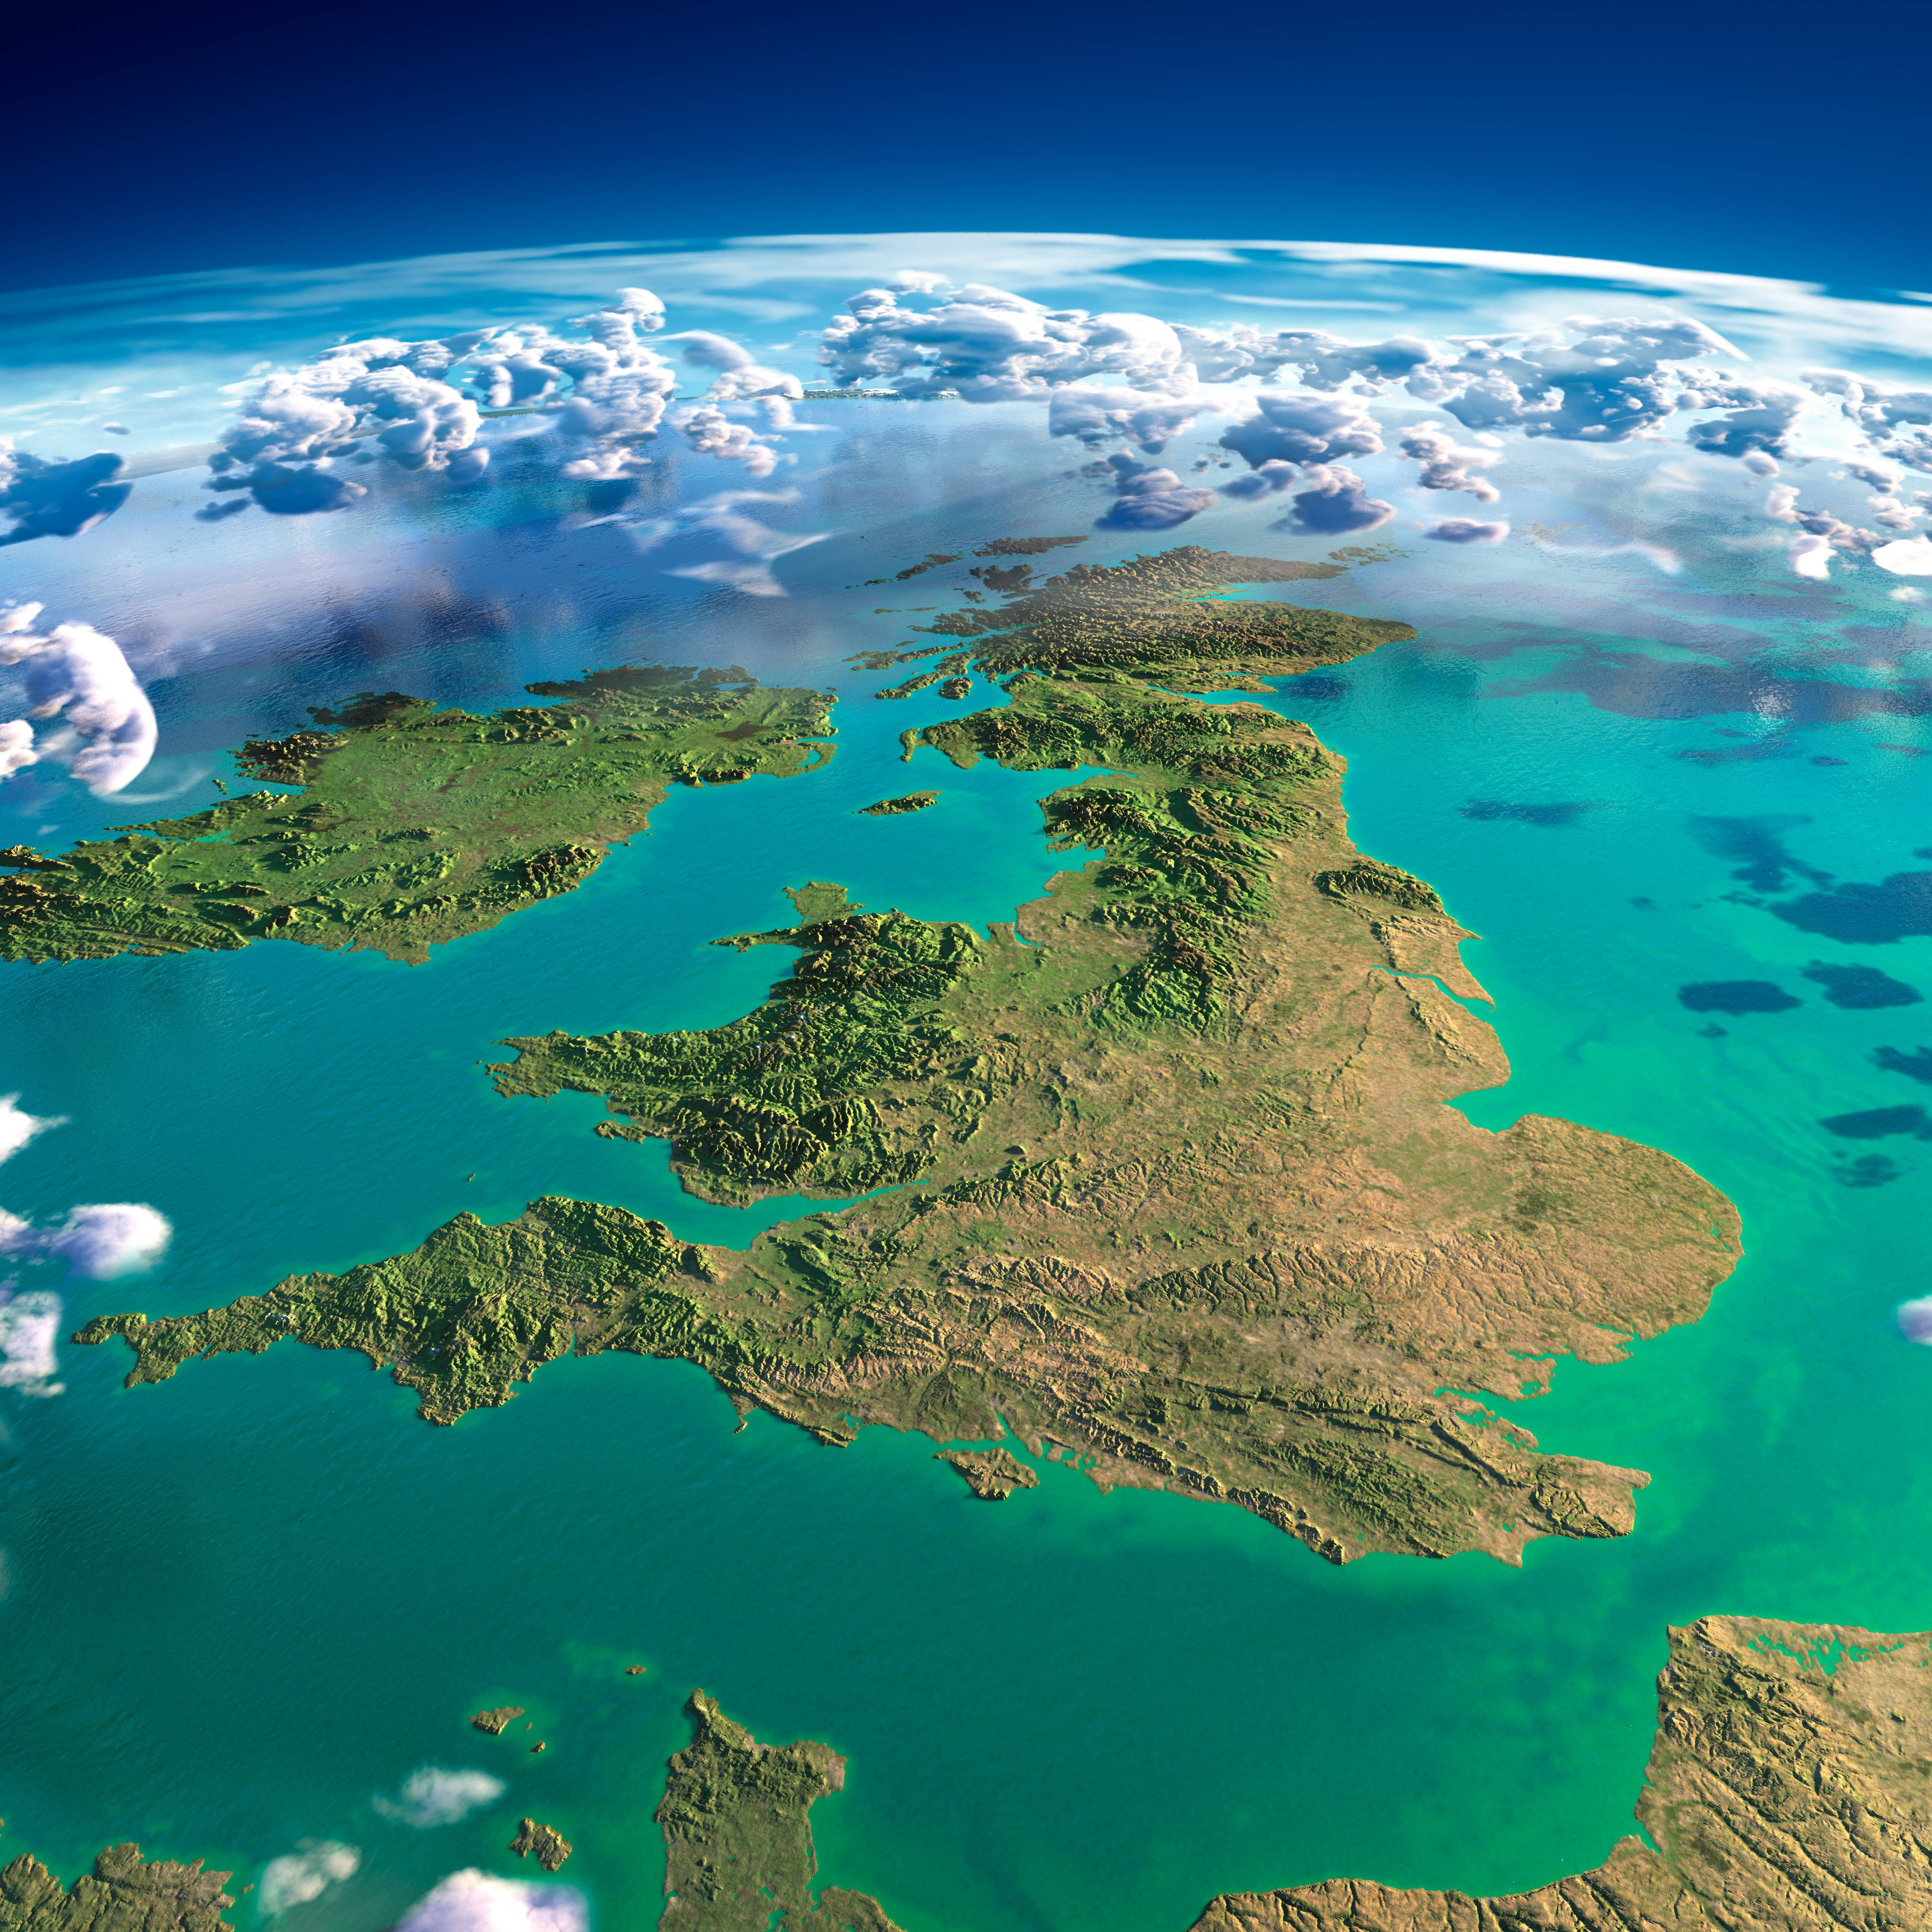 Relief map of the British Isles #britishisles